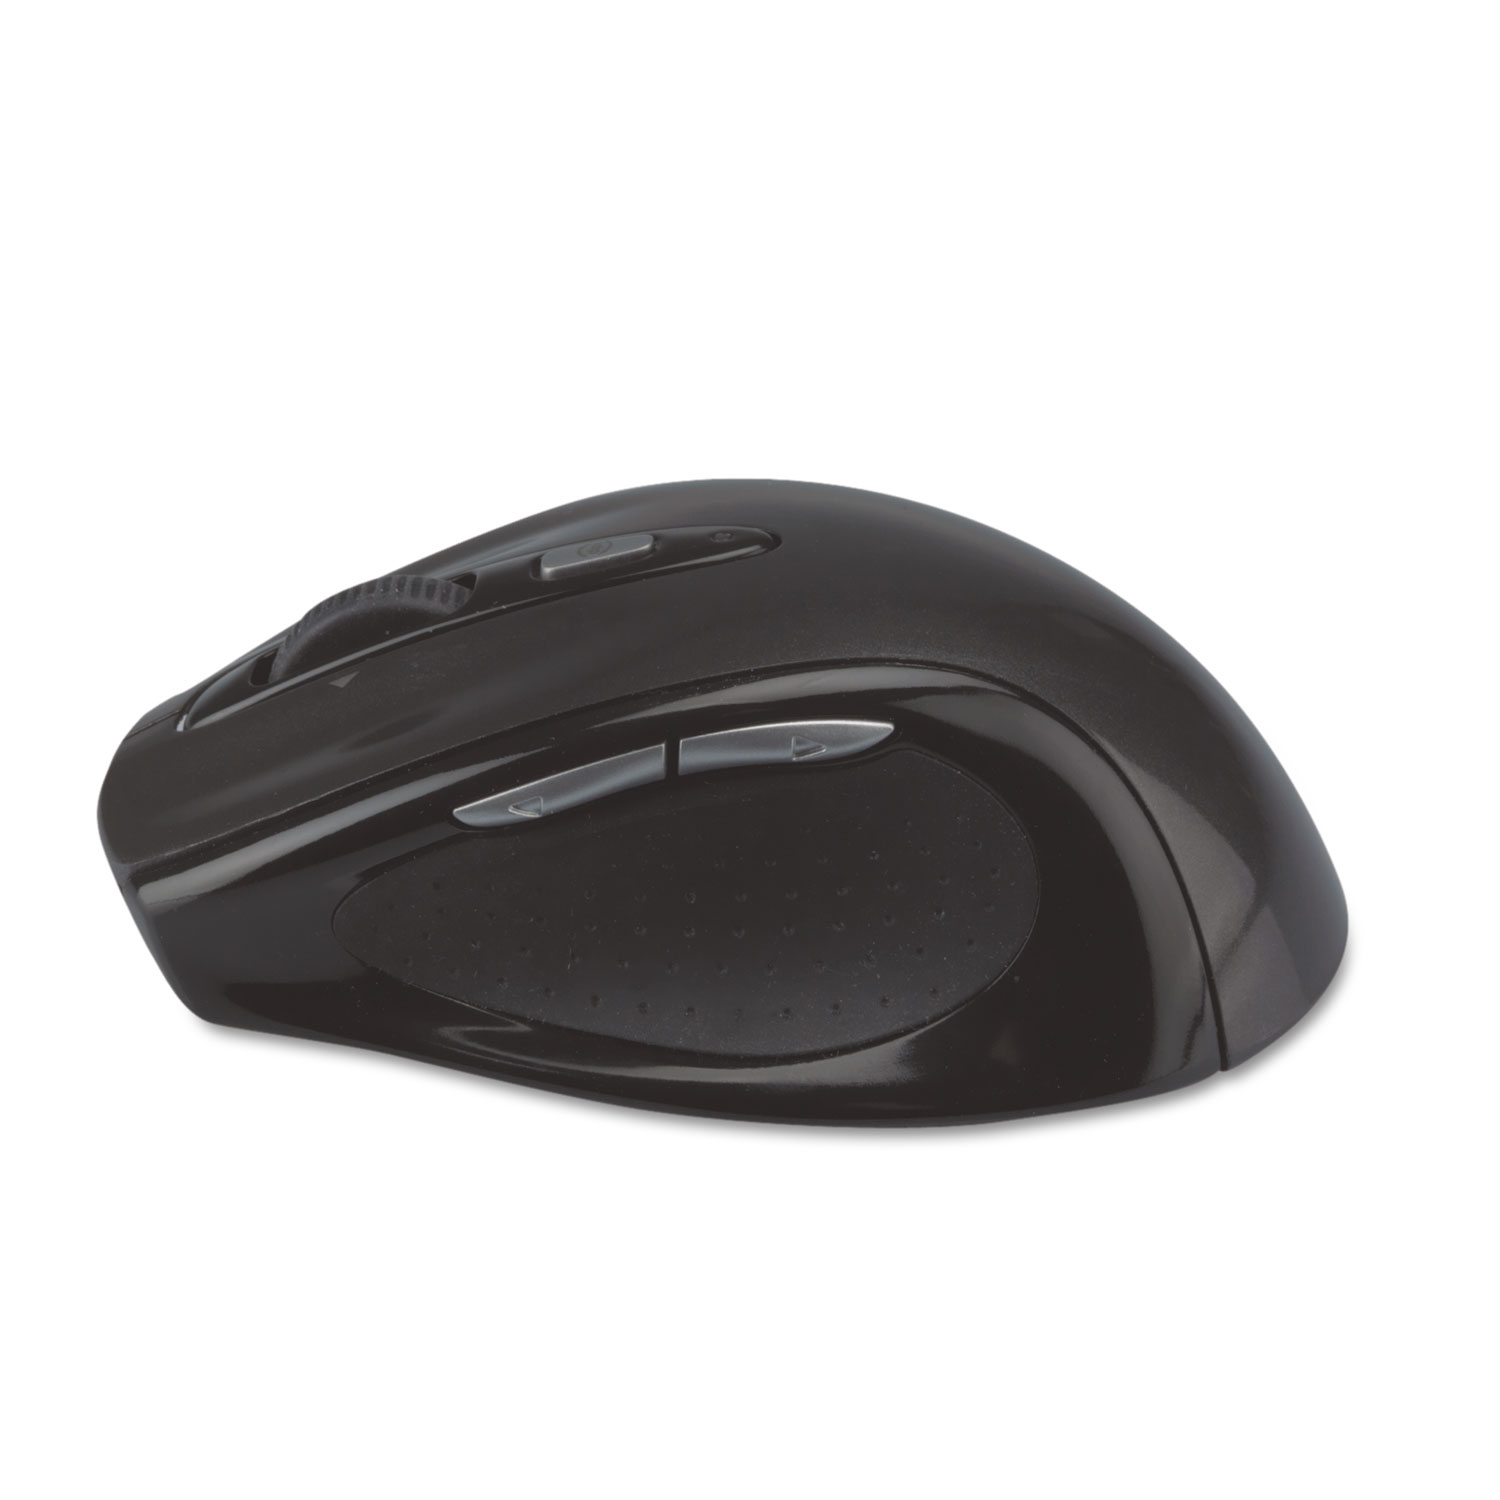 Wireless Optical Mouse With Micro Usb 2 4 Ghz Frequency